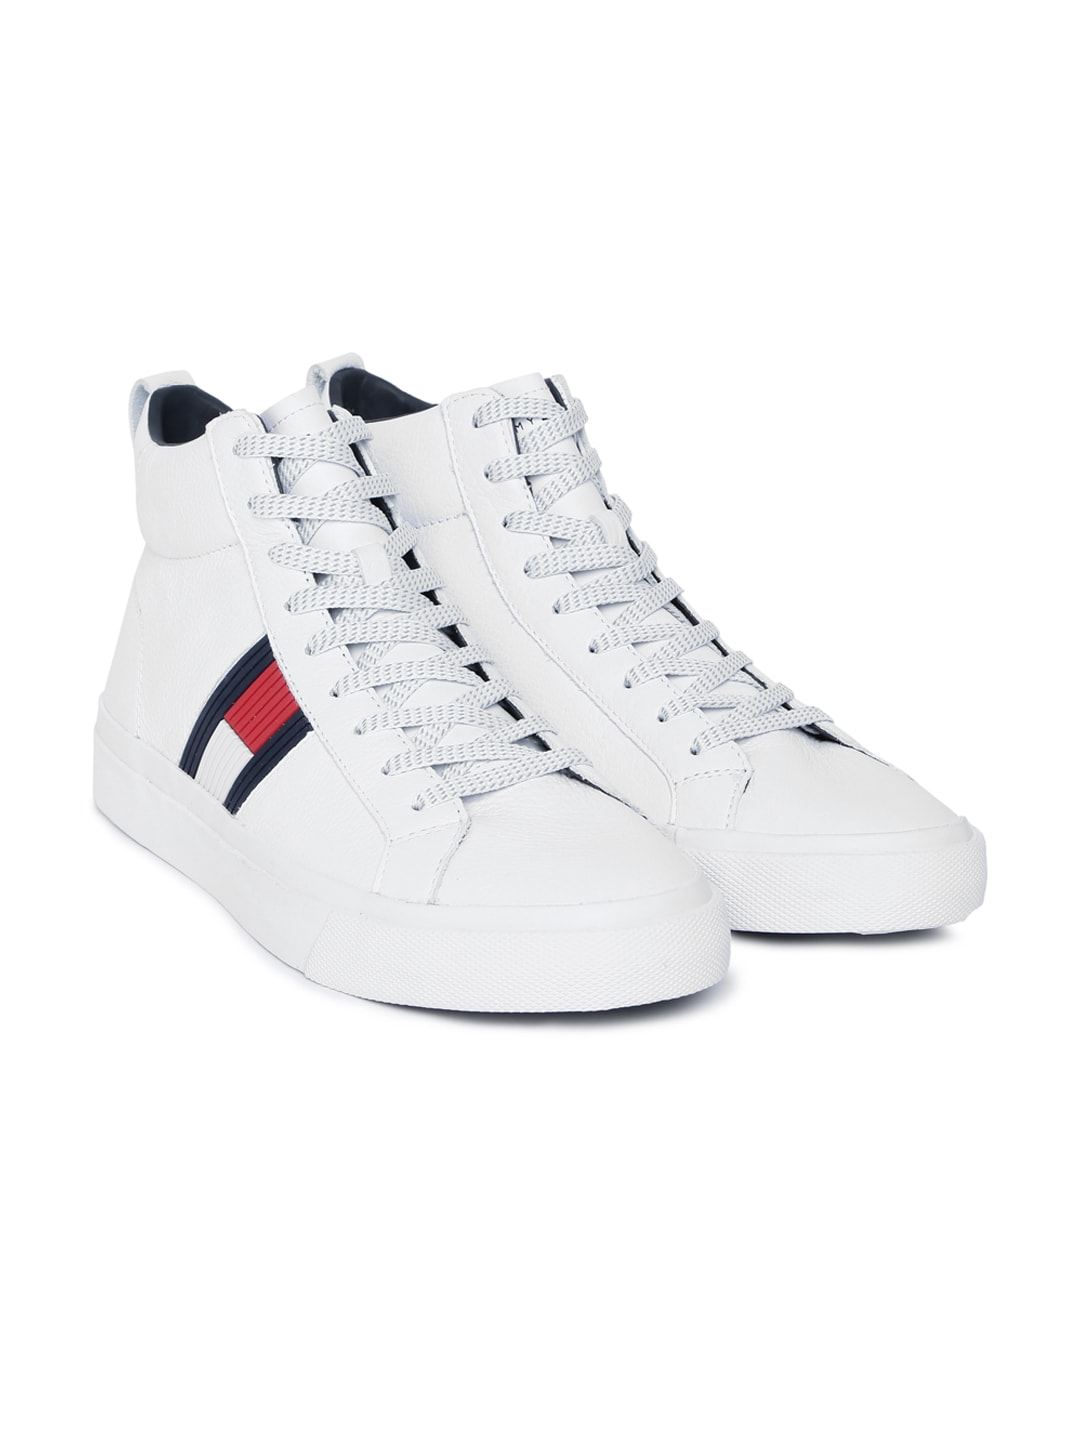 Id In Hilfiger Online Tommy Buy India rdoeCxB